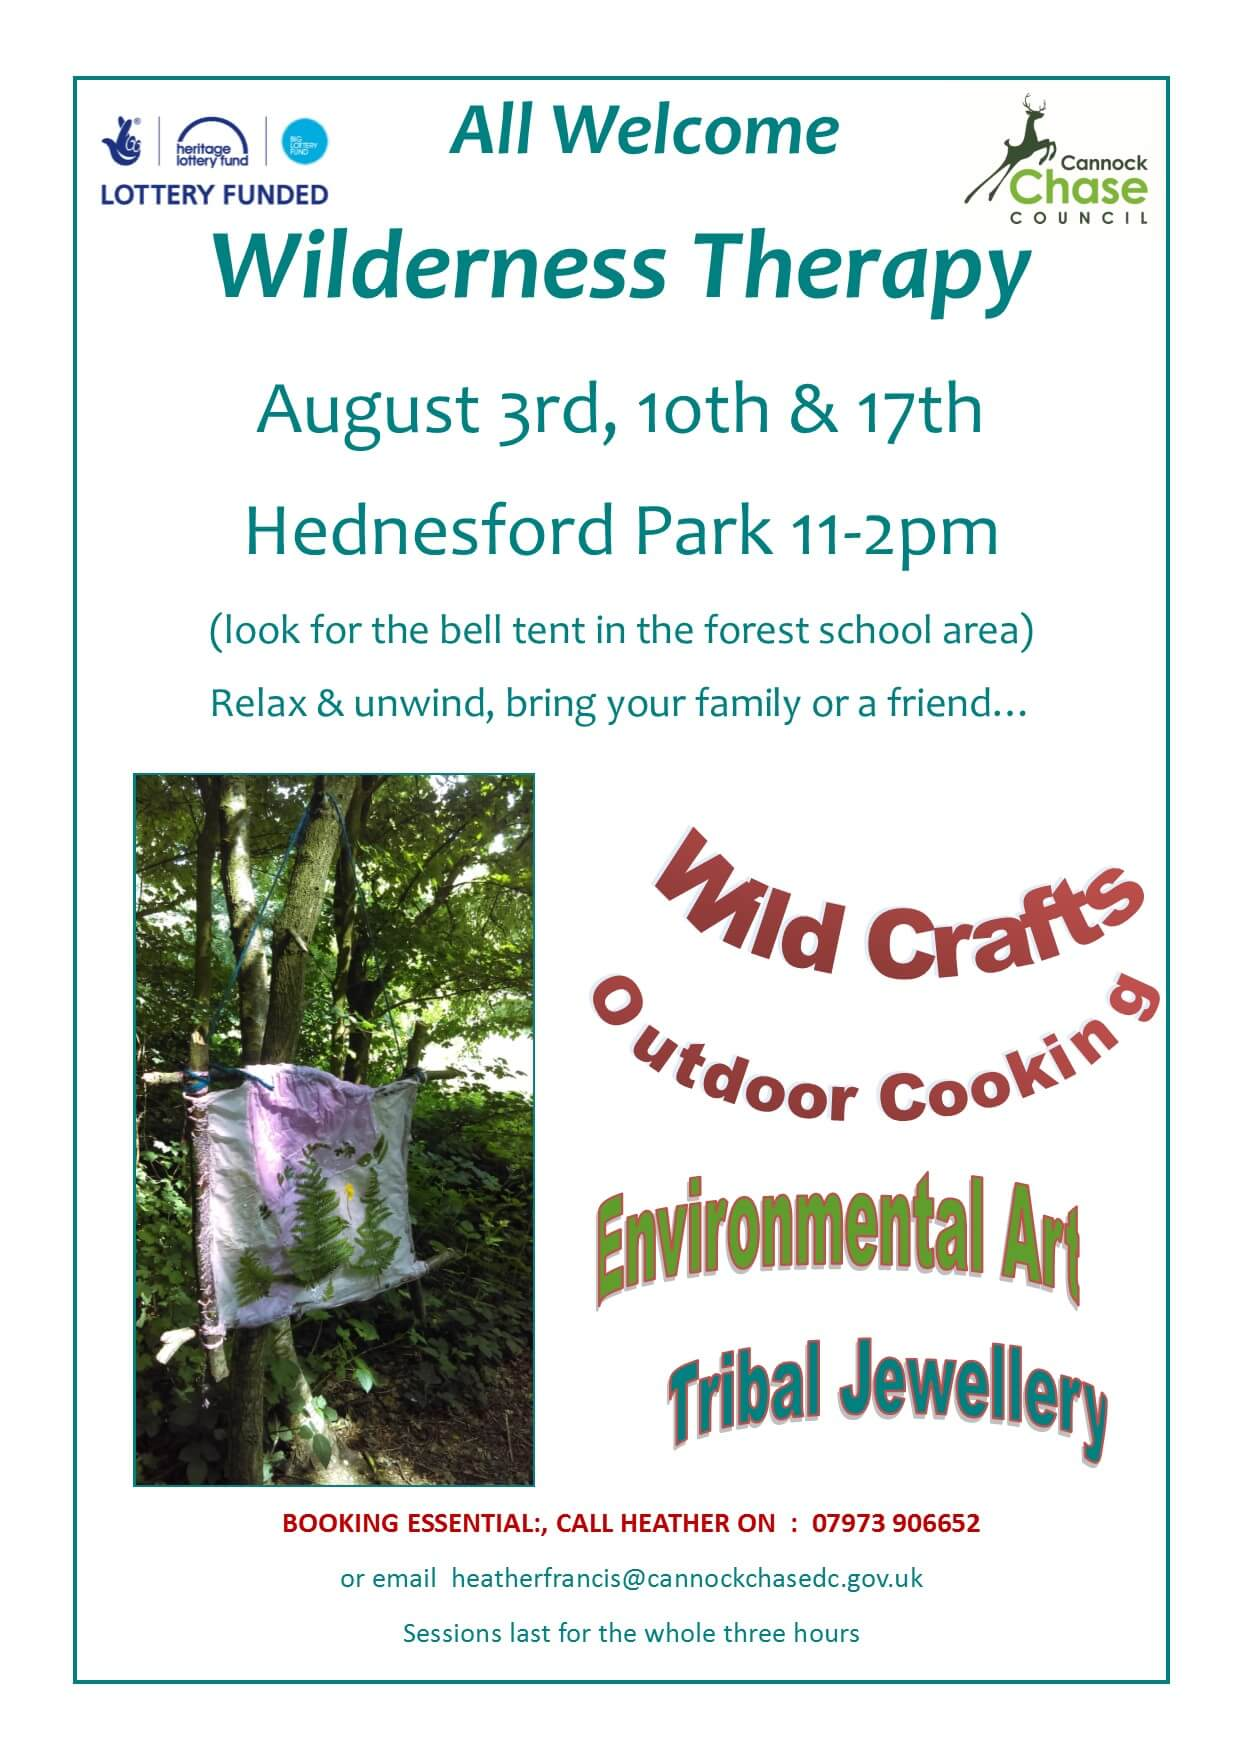 wilderness therapy poster - The Friends of Hednesford Park